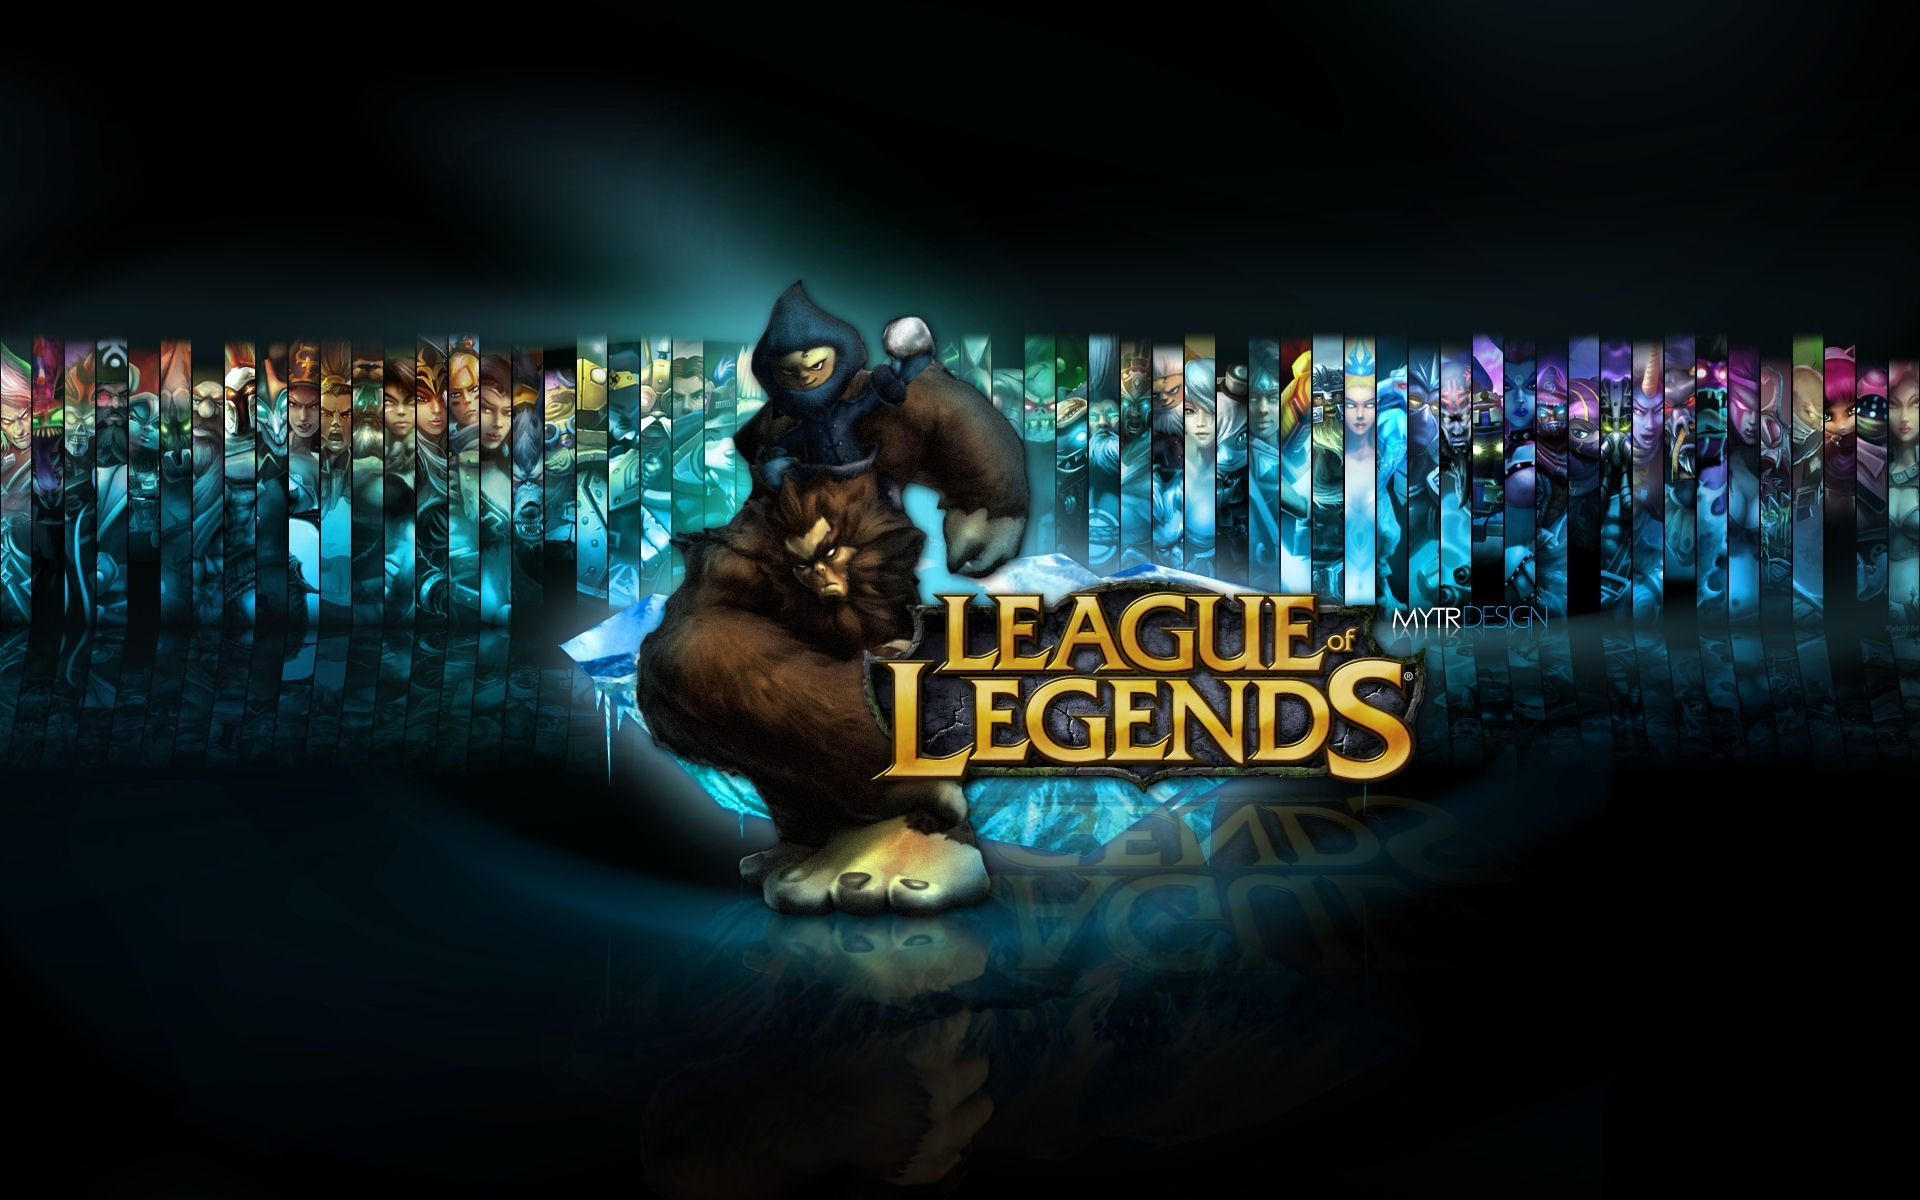 league of legends hd deskto